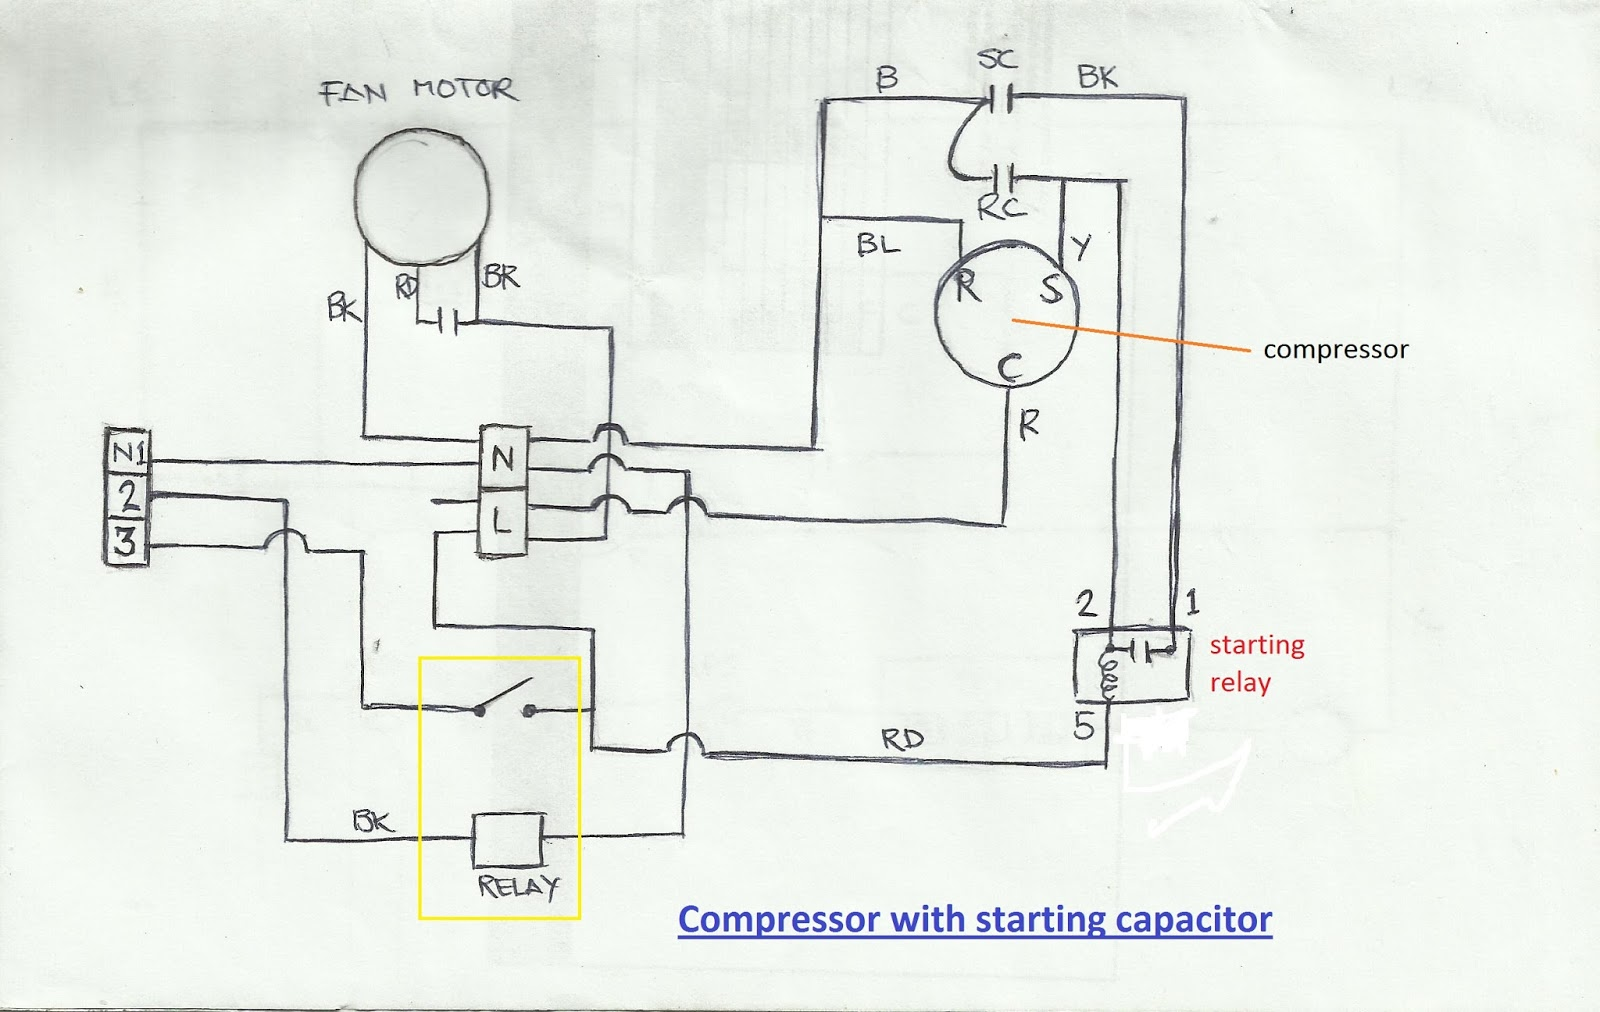 Ac Capacitor Wiring Diagram 4 Wires Best Secret Fan Motor Further Dual Electric On Window Get Free Image About Diagrams